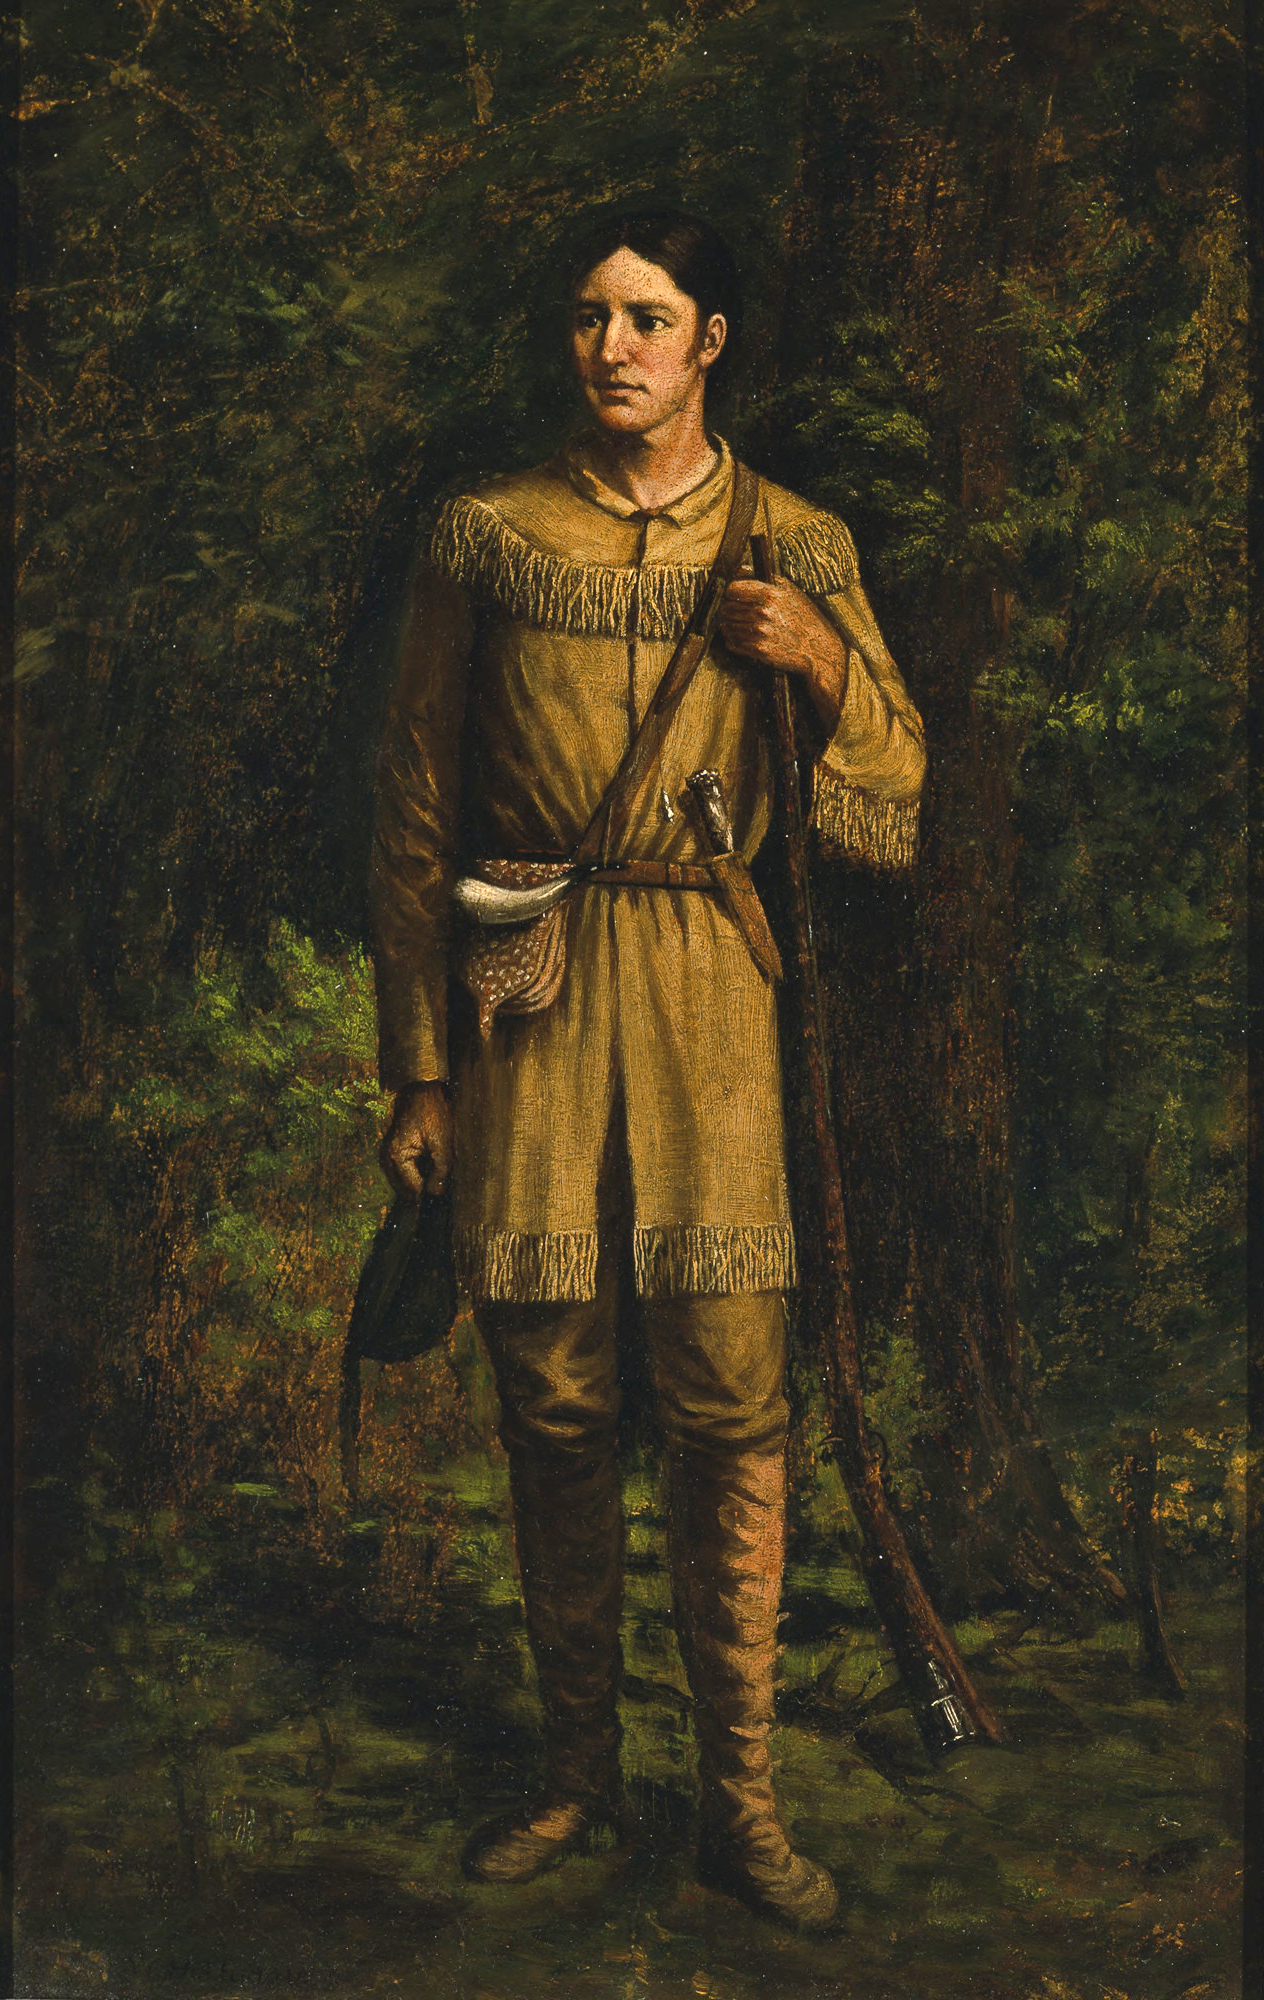 """family against family fort mims 1813 essay A brief history on august 30, 1813, a force of about 1,000 warriors of a faction of the creek nation native americans known as the """"red sticks"""" attacked fort mims."""